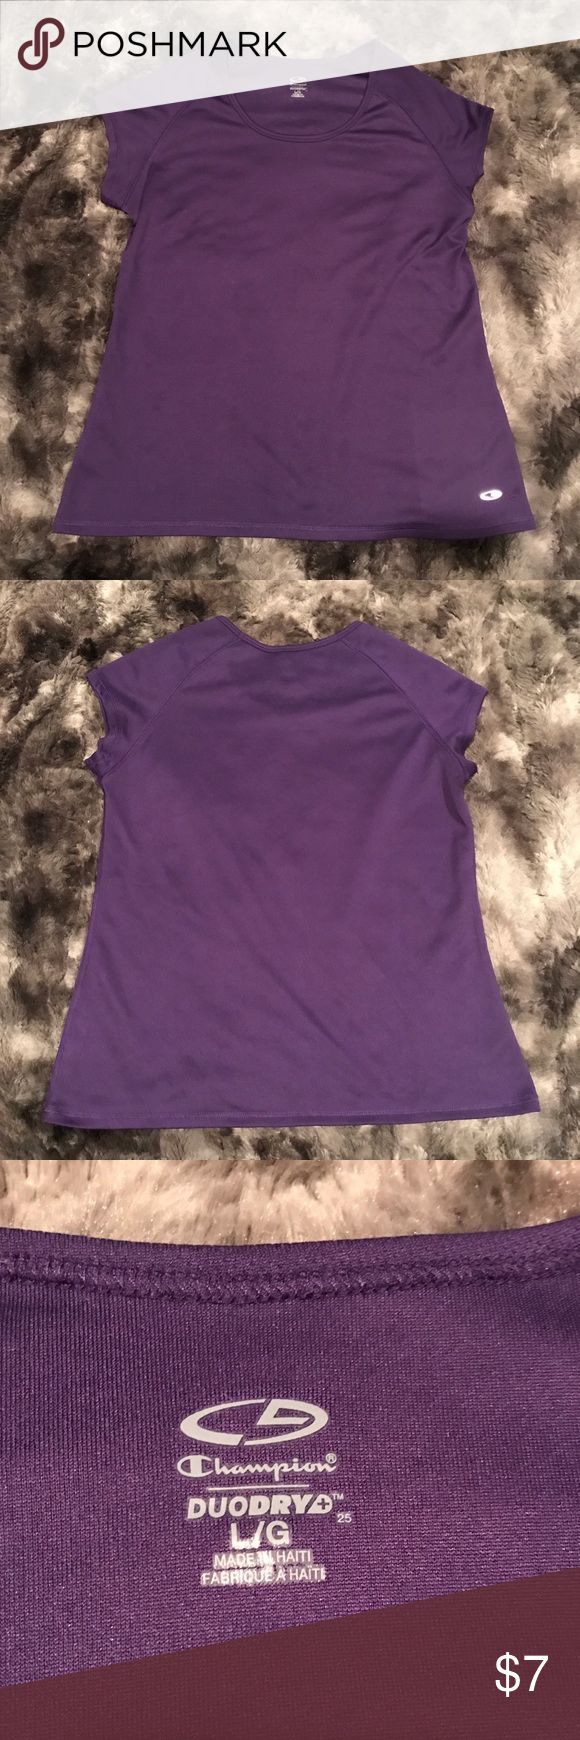 "Womens large Champion workout athletic top purple Women's Large athletic duo dry workout top by Champion. It is purple with short cap sleeves. Perfect for running, yoga and fitness. In excellent condition! Length-25"" armpit to armpit-20"" Champion Tops Tees - Short Sleeve"